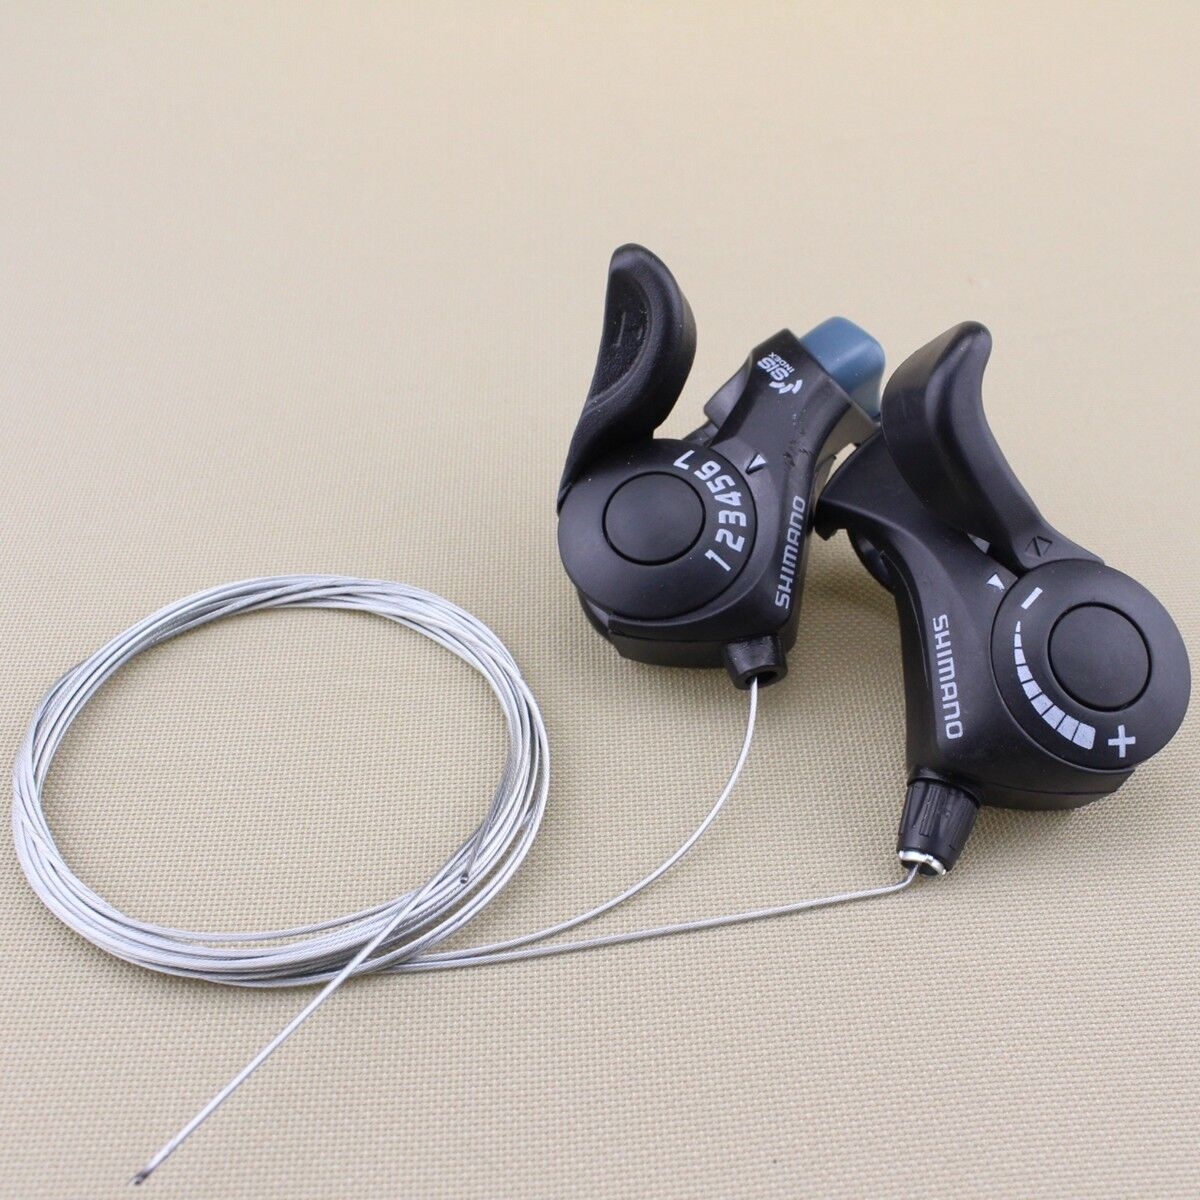 NEW Shimano Tourney Shifter SL-TX30 3x7Speed Index SiS Thumb Shifters with Cable